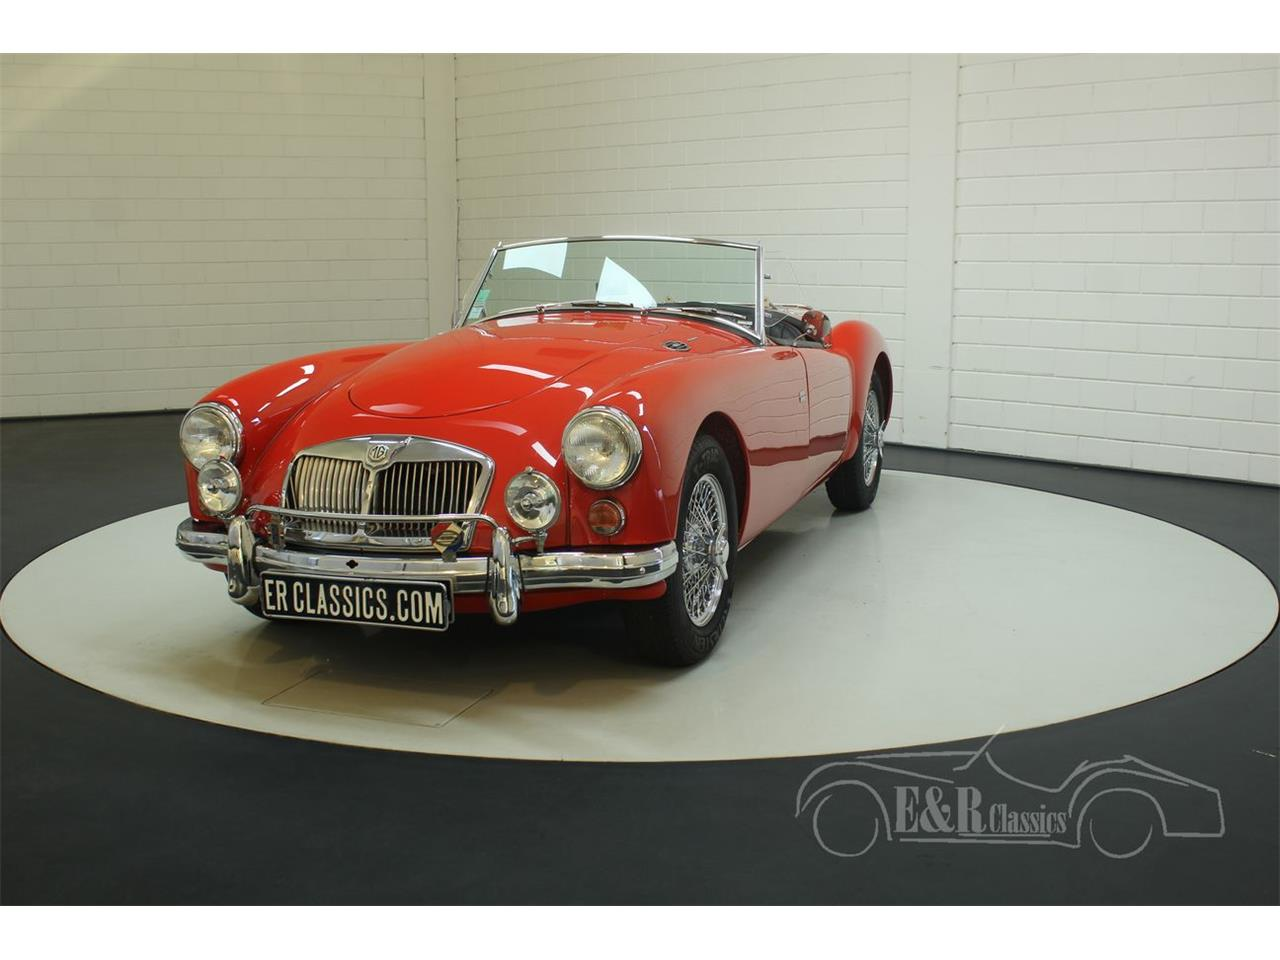 Large Picture of 1962 MG MGA located in Waalwijk Noord-Brabant - $45,000.00 Offered by E & R Classics - QKGO